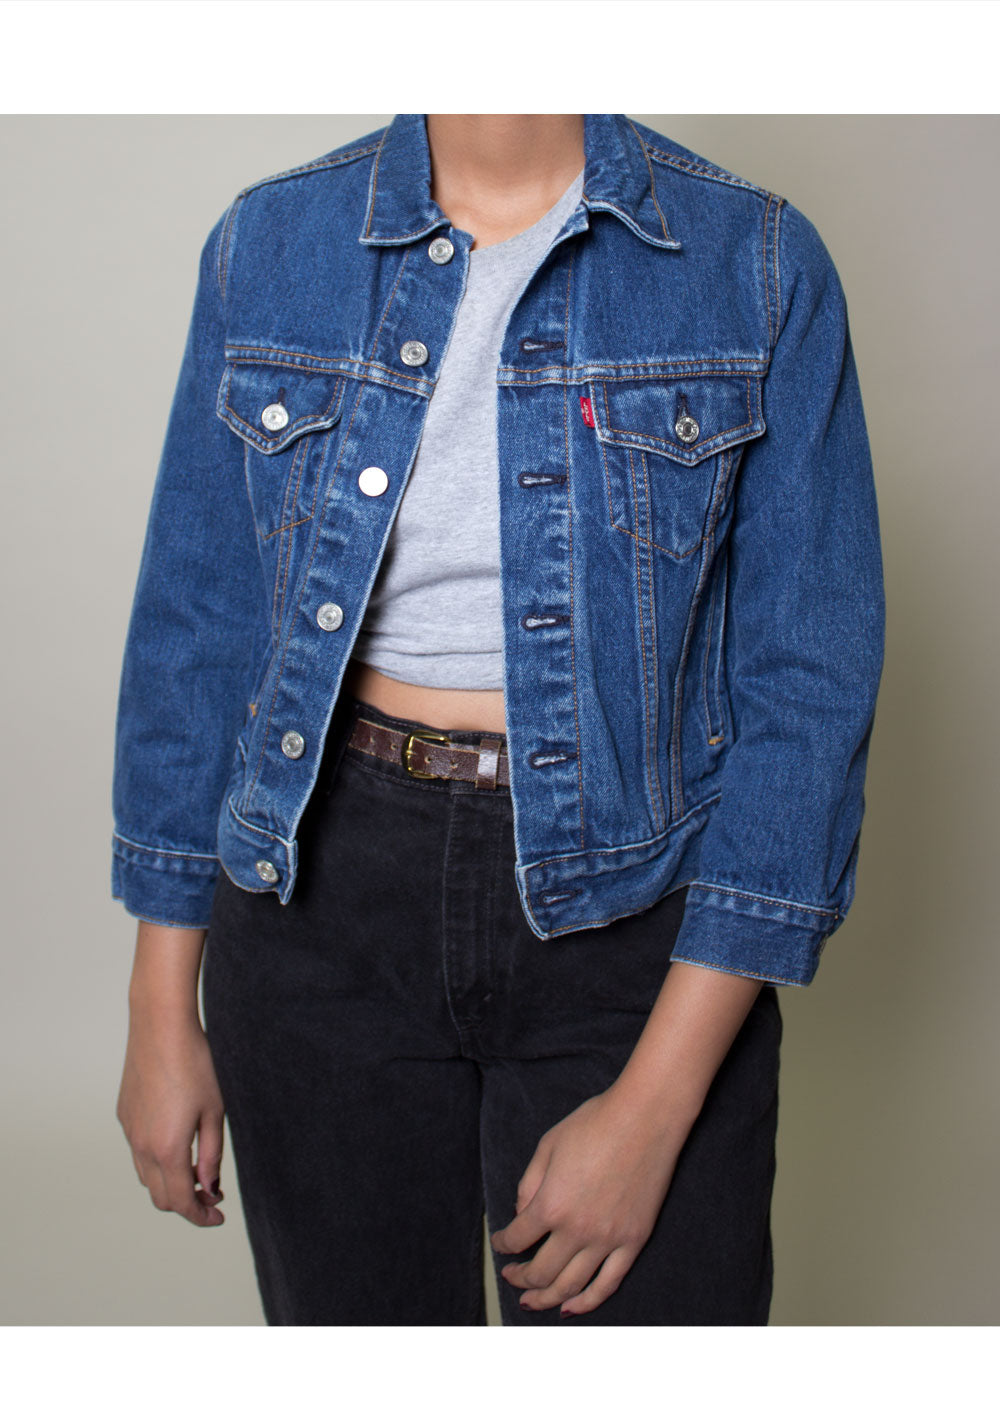 Levis Denim Jacket-Dark Wash